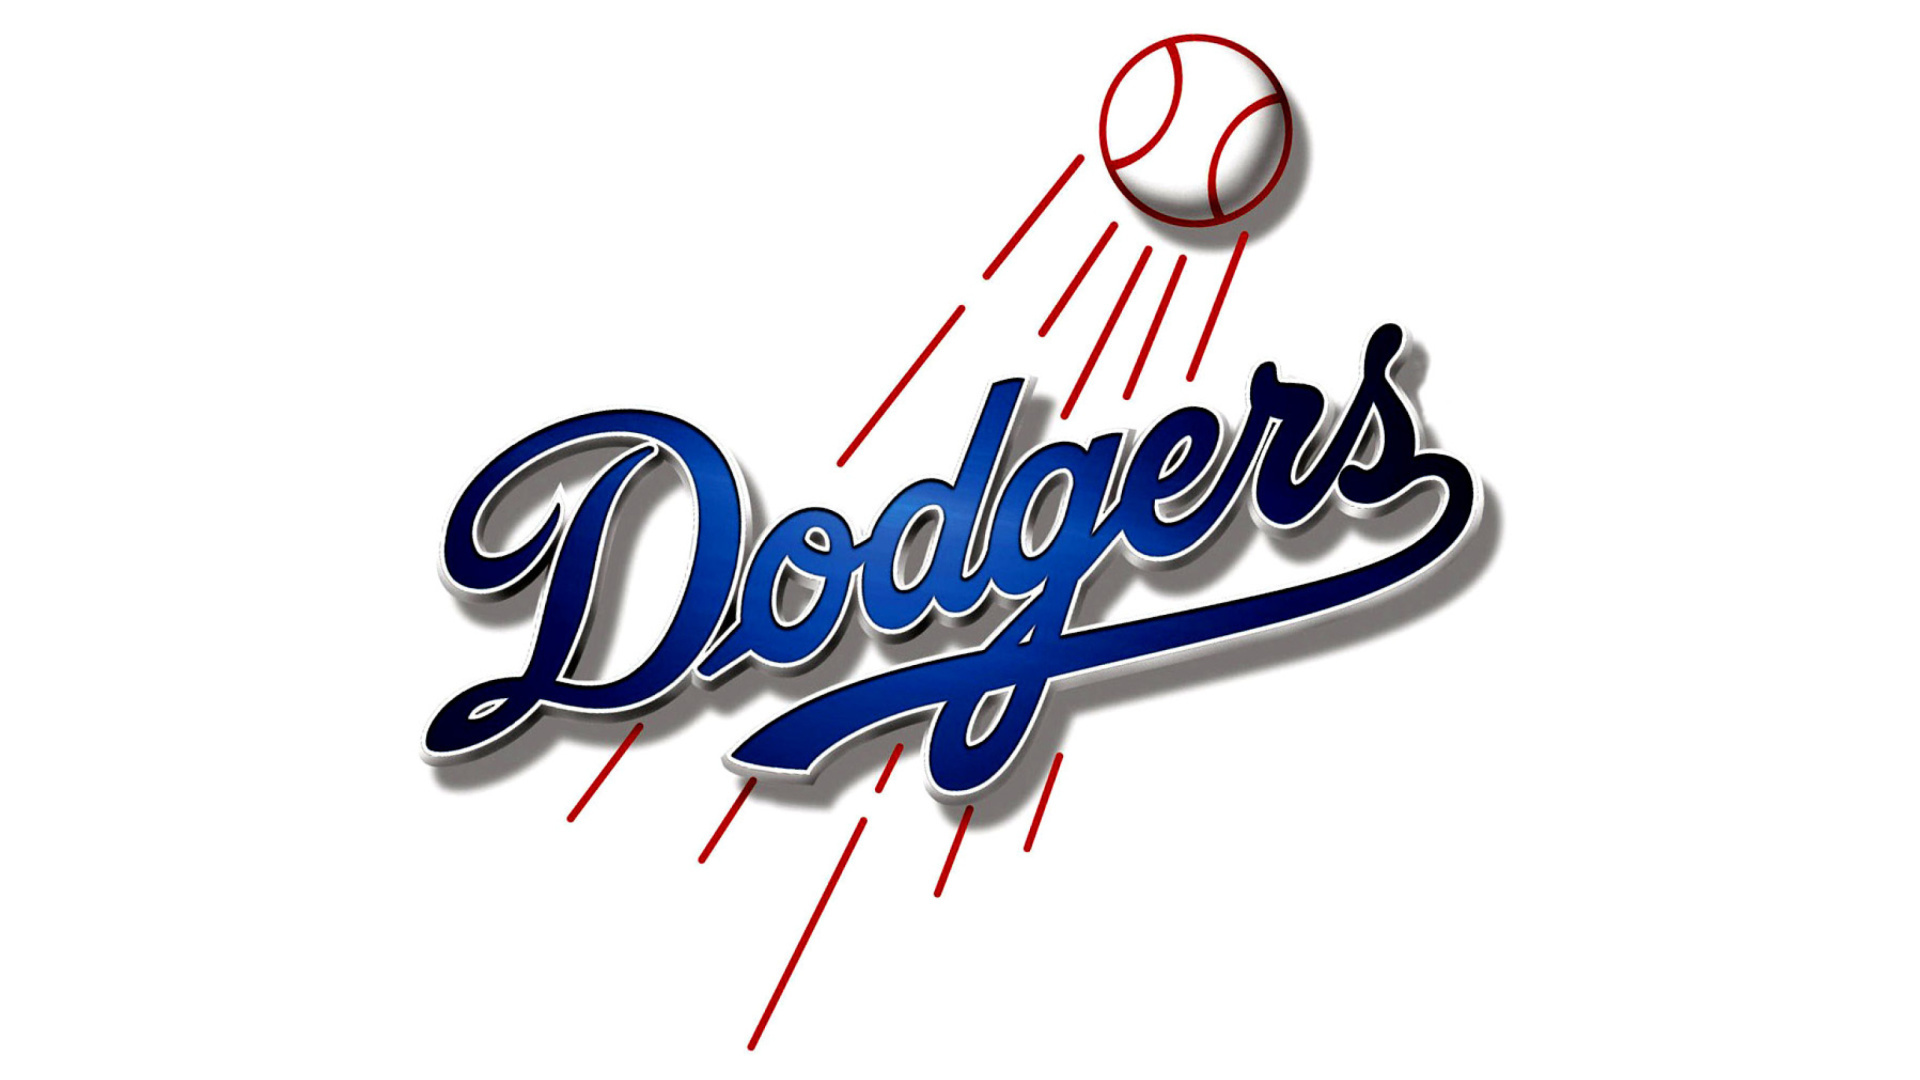 dodgers wallpapers images photos pictures backgrounds pittsburgh pirates logo pictures Pittsburgh Pirates New Logo